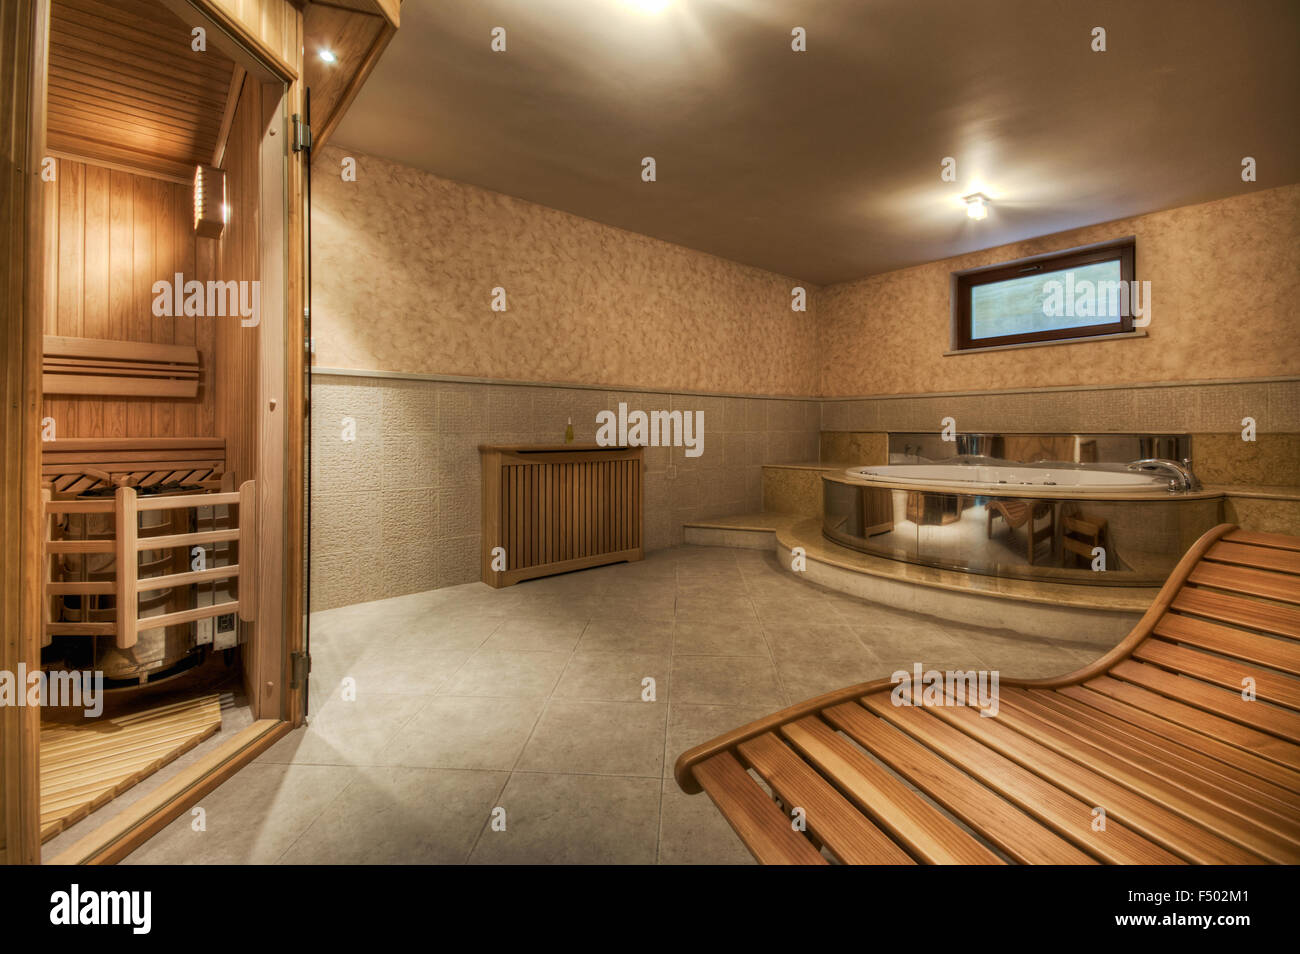 Home Sauna And Jacuzzi Home Spa Stock Photo 89127249 Alamy